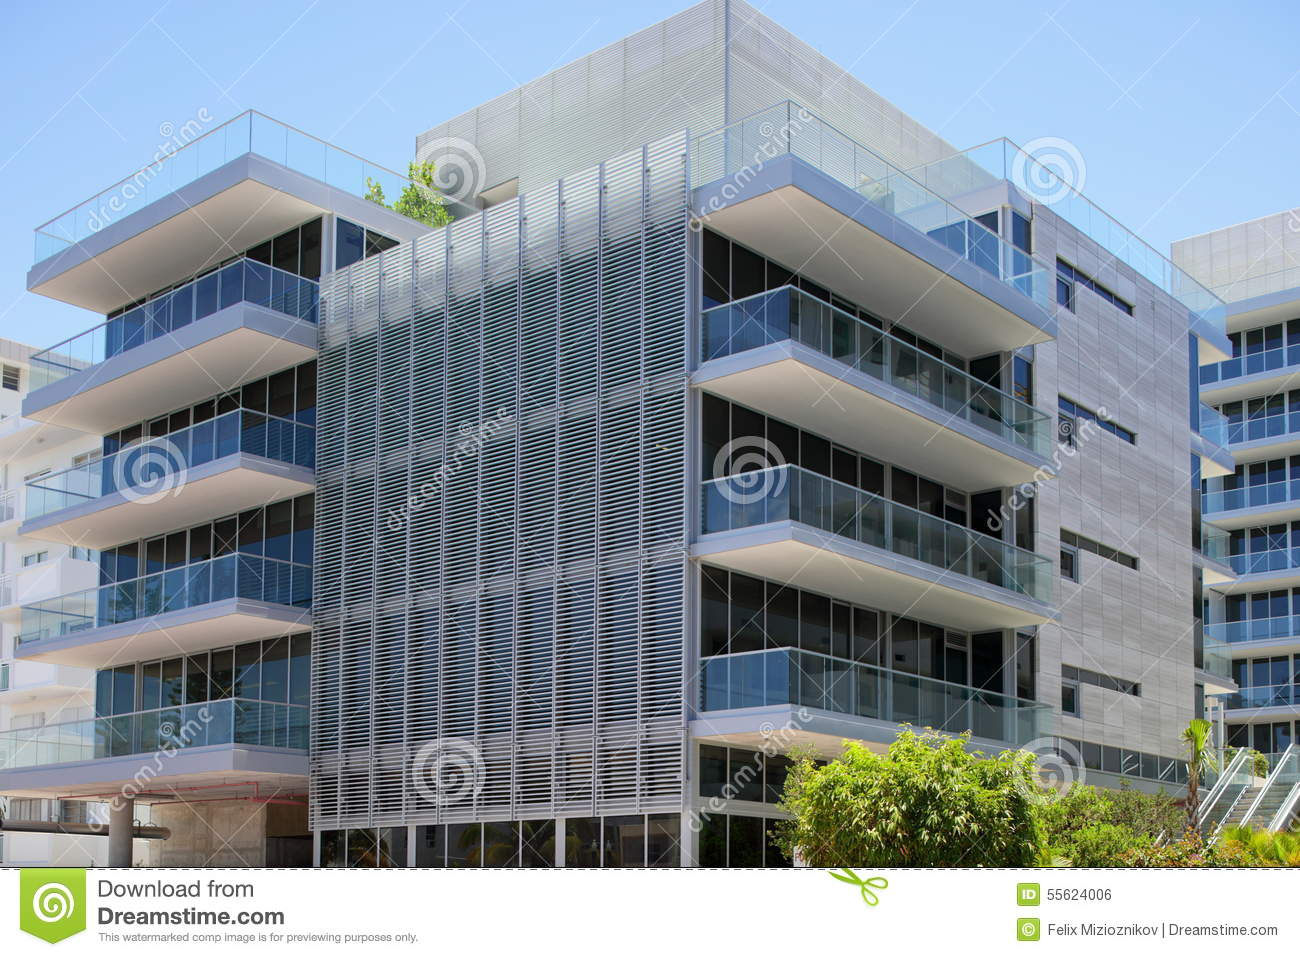 Modern Architecture Miami miami beach modern architecture stock photo - image: 55624006